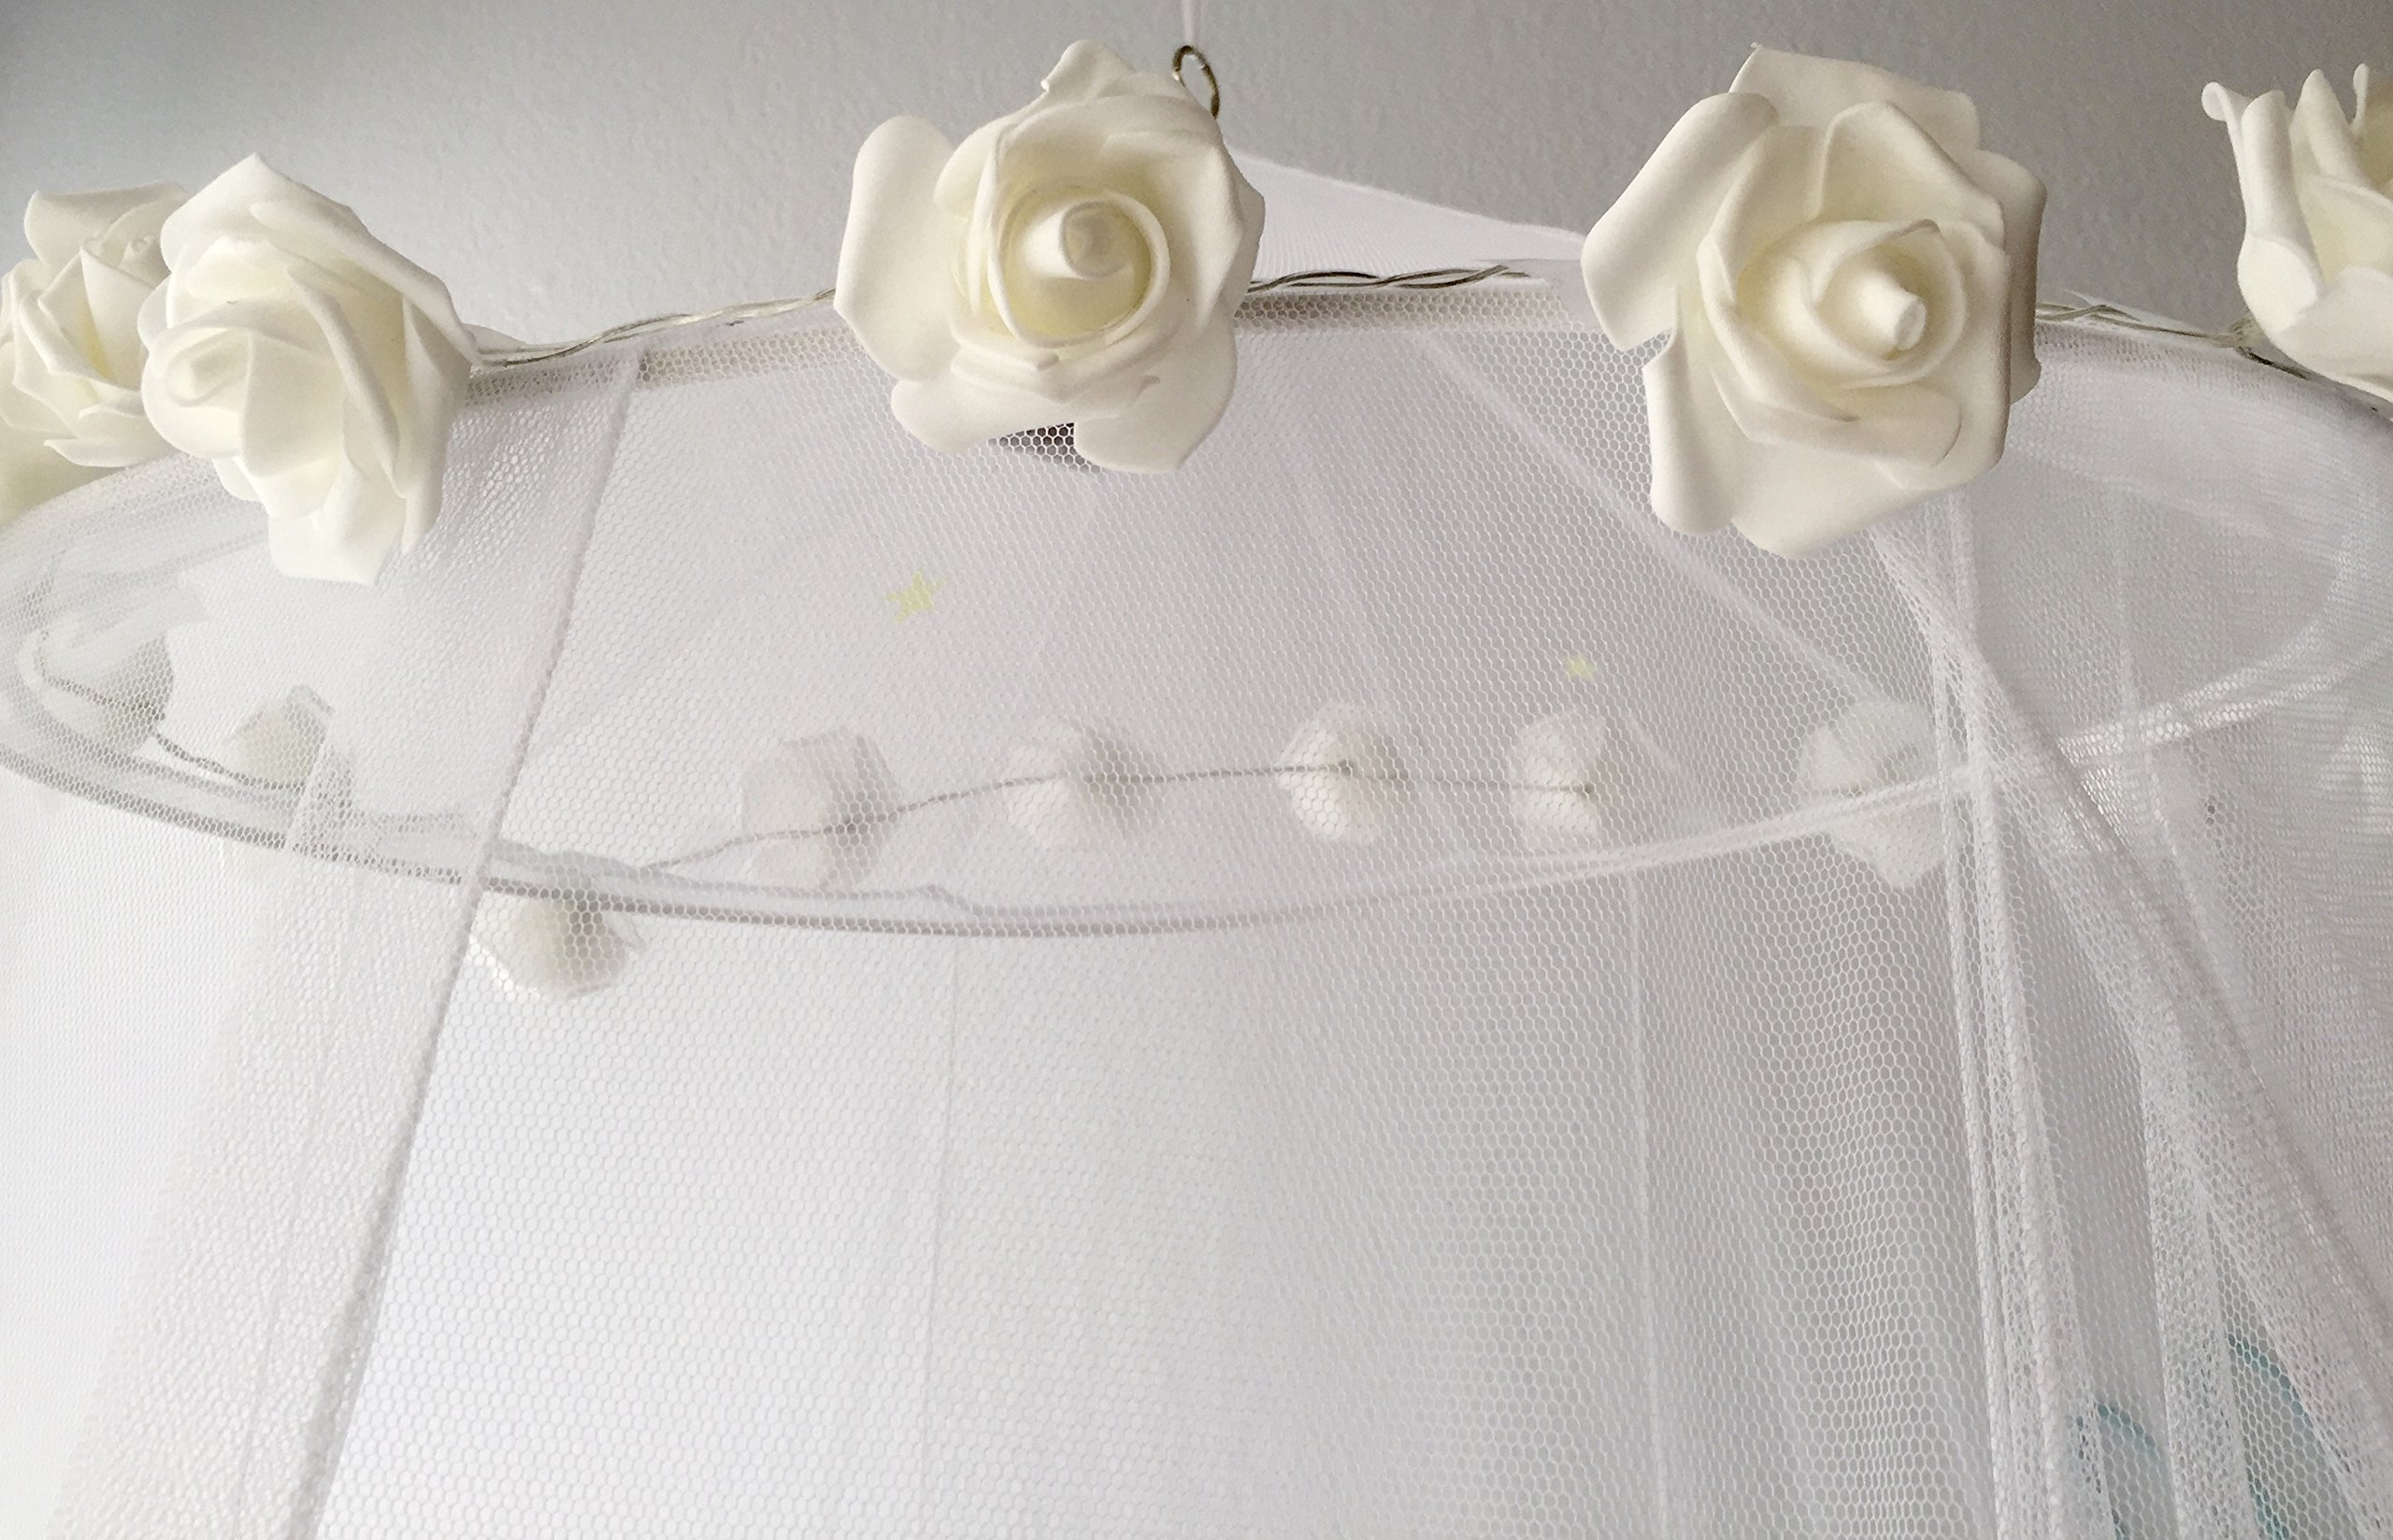 Princess Bed Canopy Girls Teens Kids - Child Play Tent | Includes Bedroom Netting and White Rose LED Lights | Extra Large Size Fits Queen | Sleep Under Our Bed of Roses